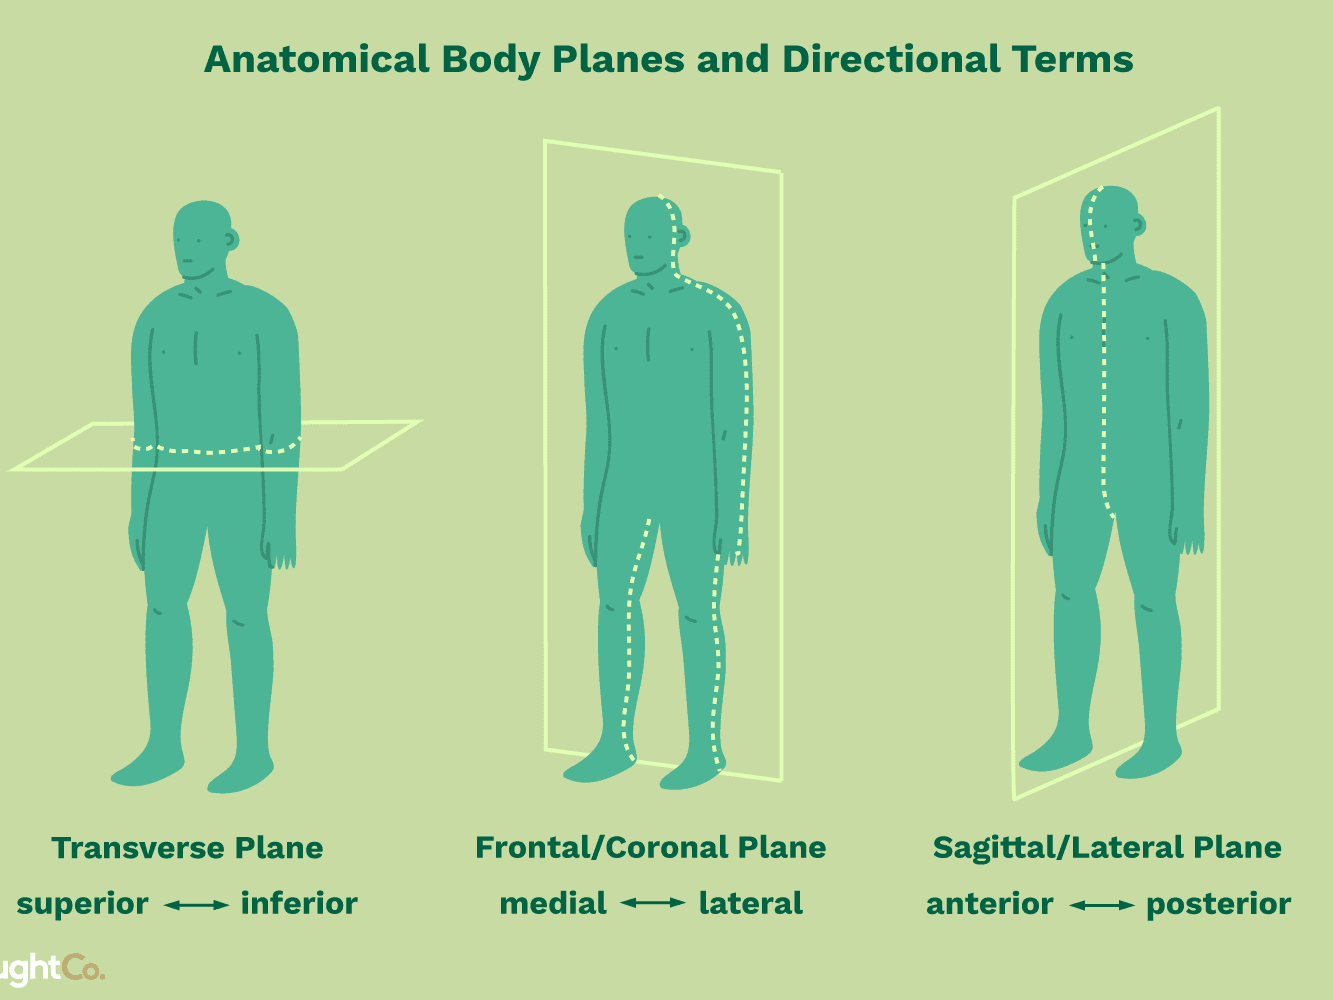 coronal plane means in medical term